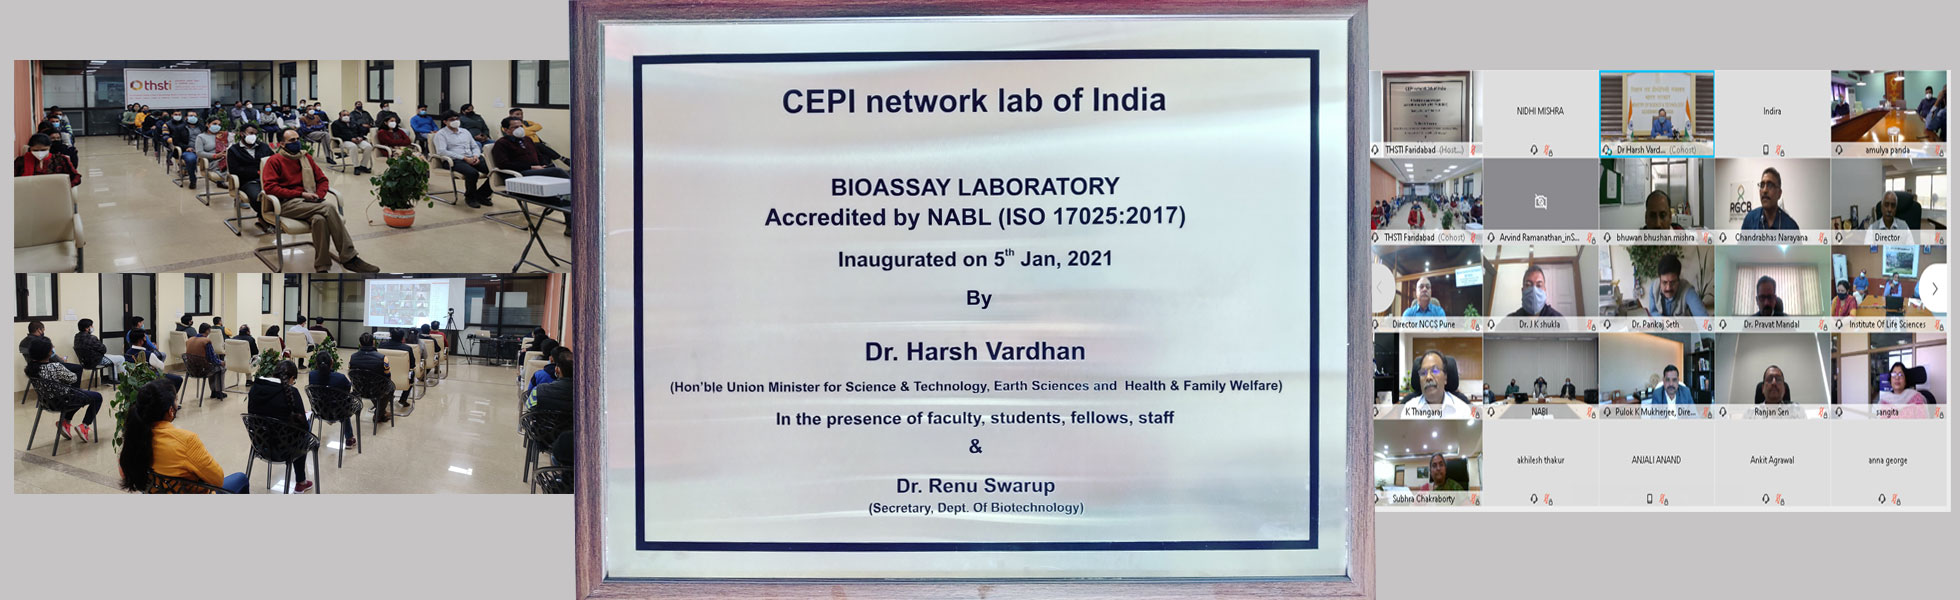 Honorable Minister Dr. Harsh Vardhan inaugurates CEPI-Bioassay Lab